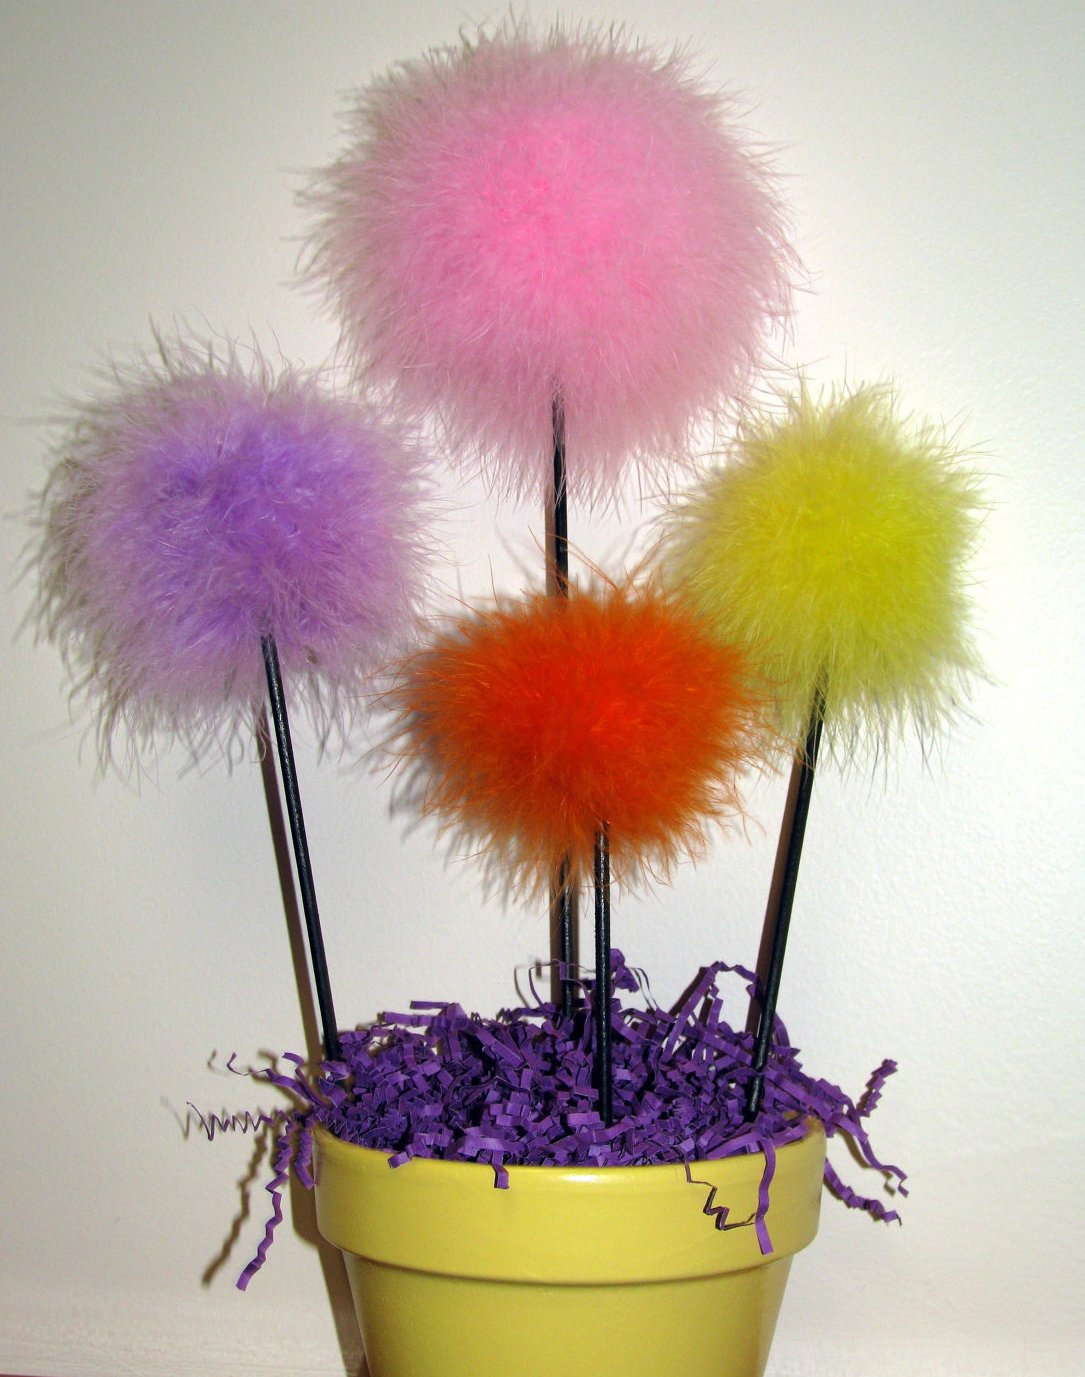 Maribou Feather Puff Purim Centerpiece